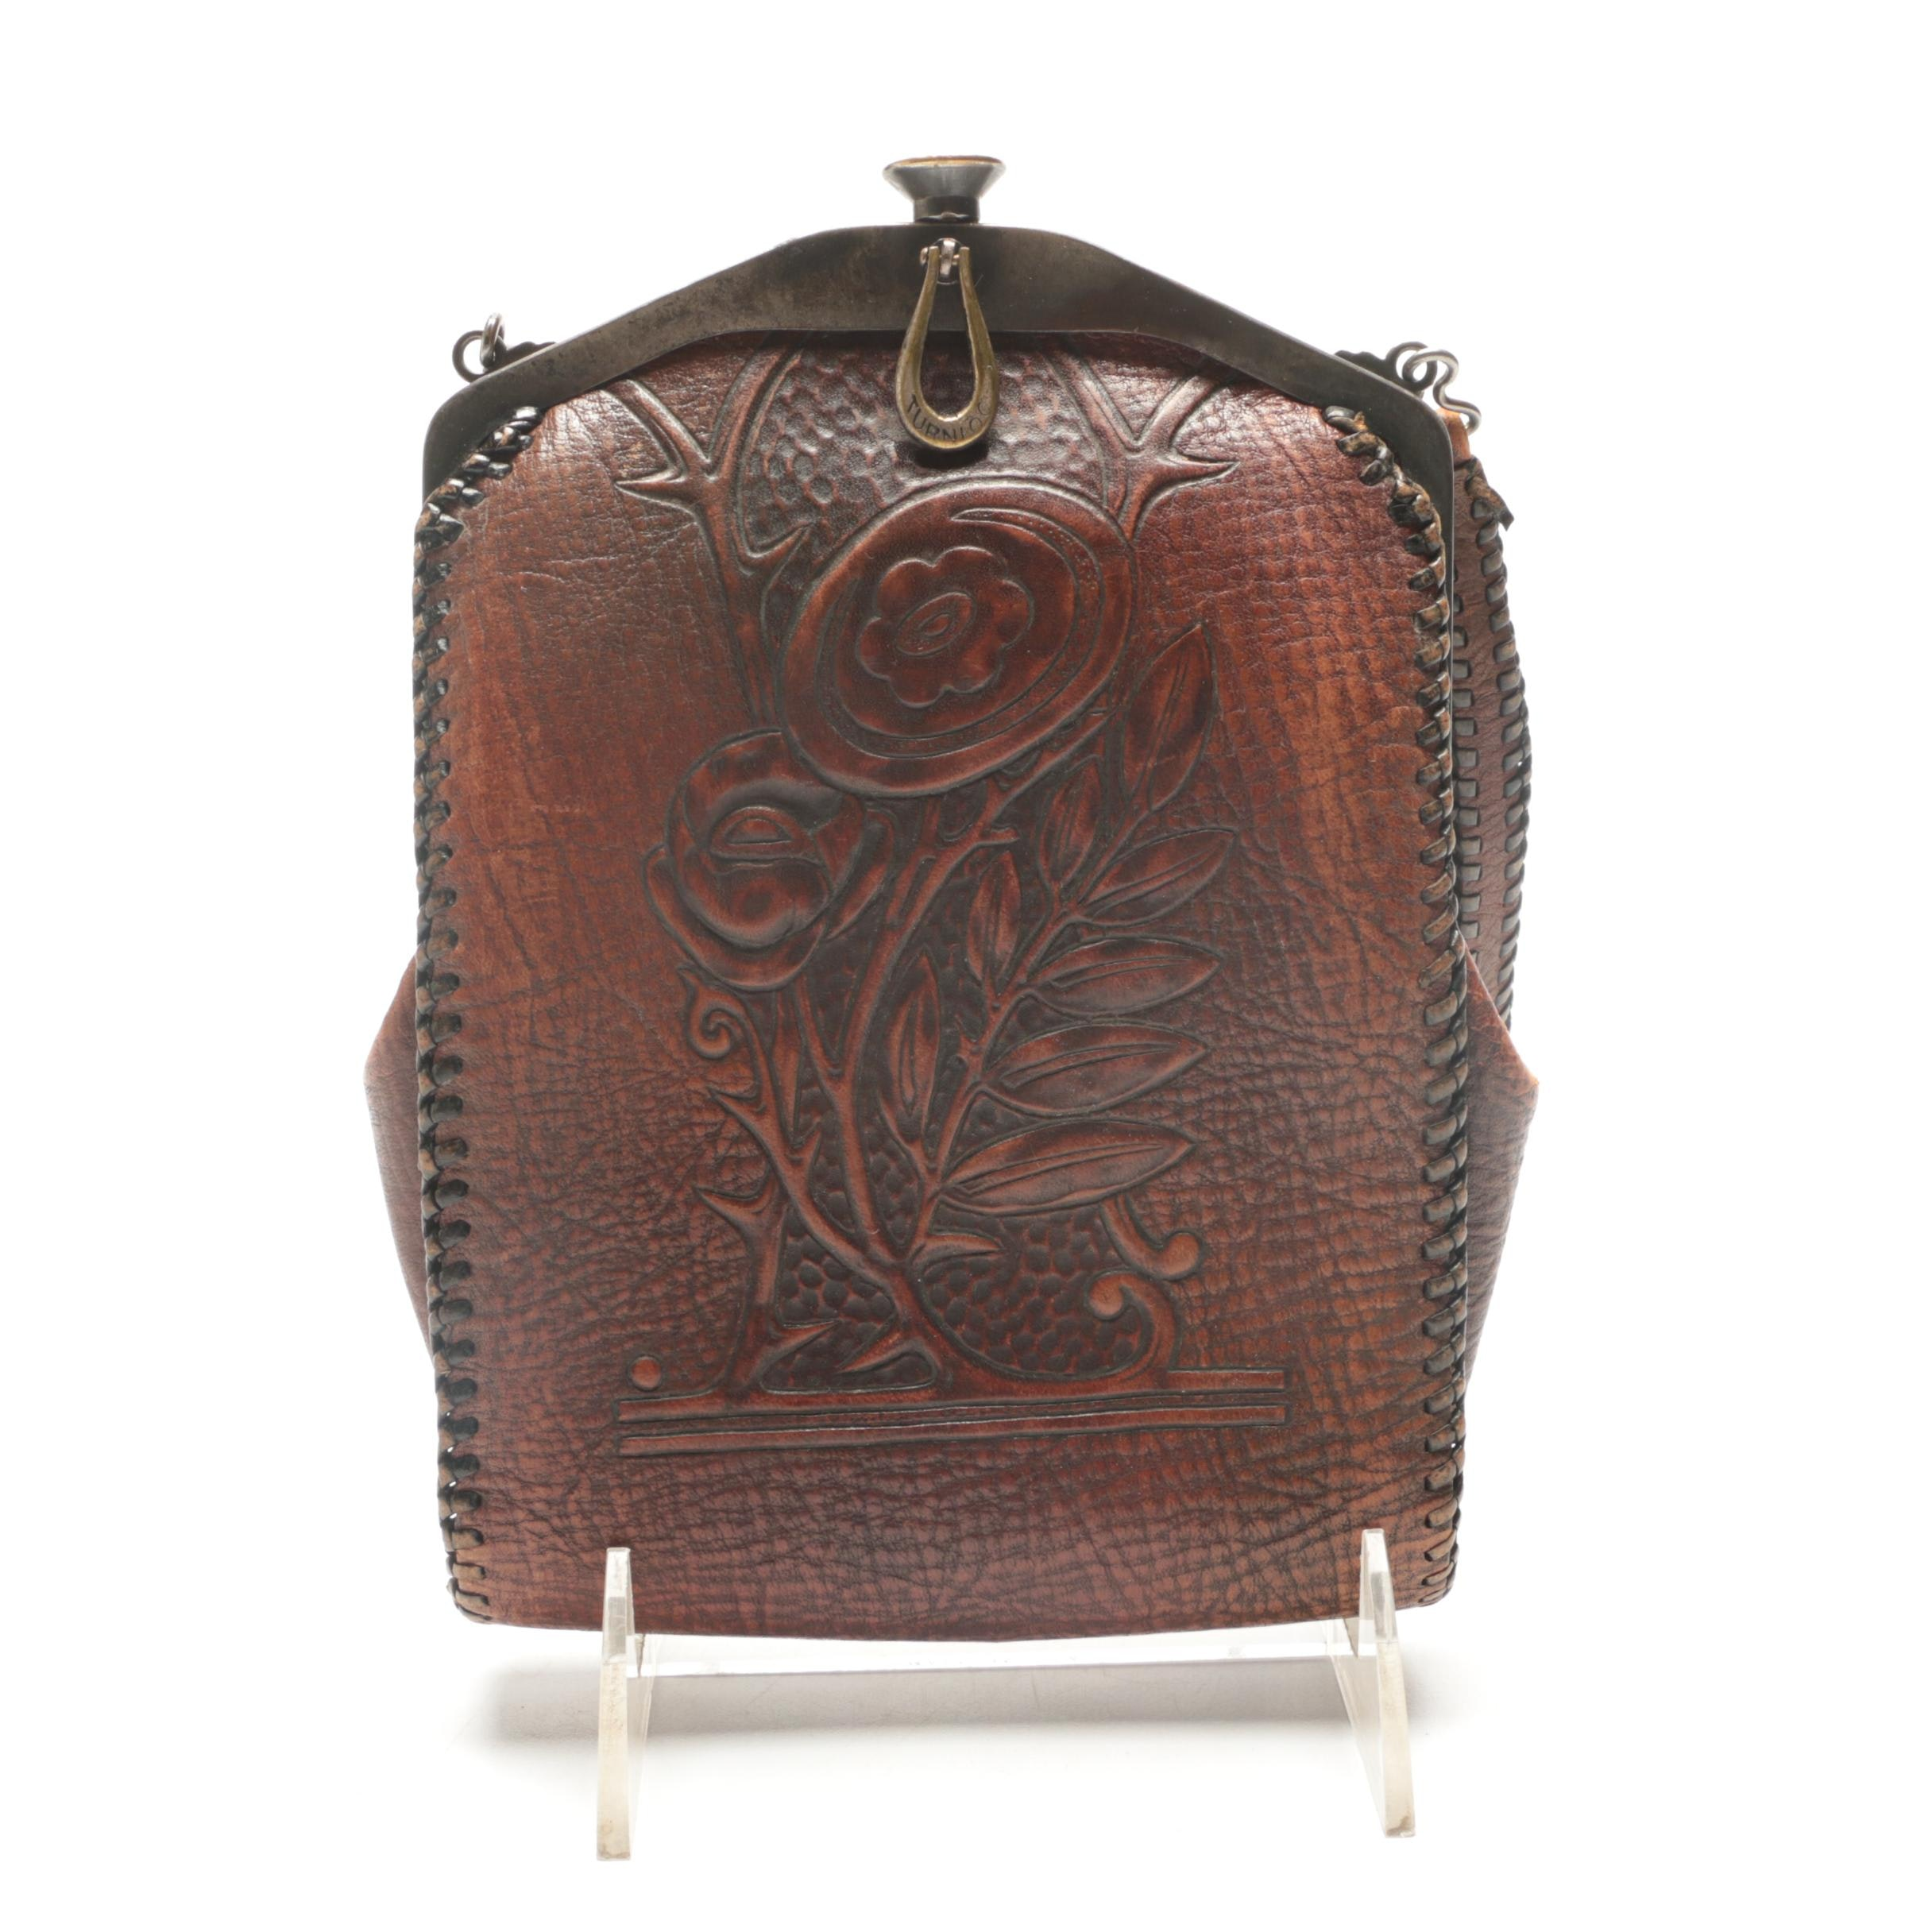 1910s Antique Nocona Bags Arts & Crafts Tooled Leather Frame Bag